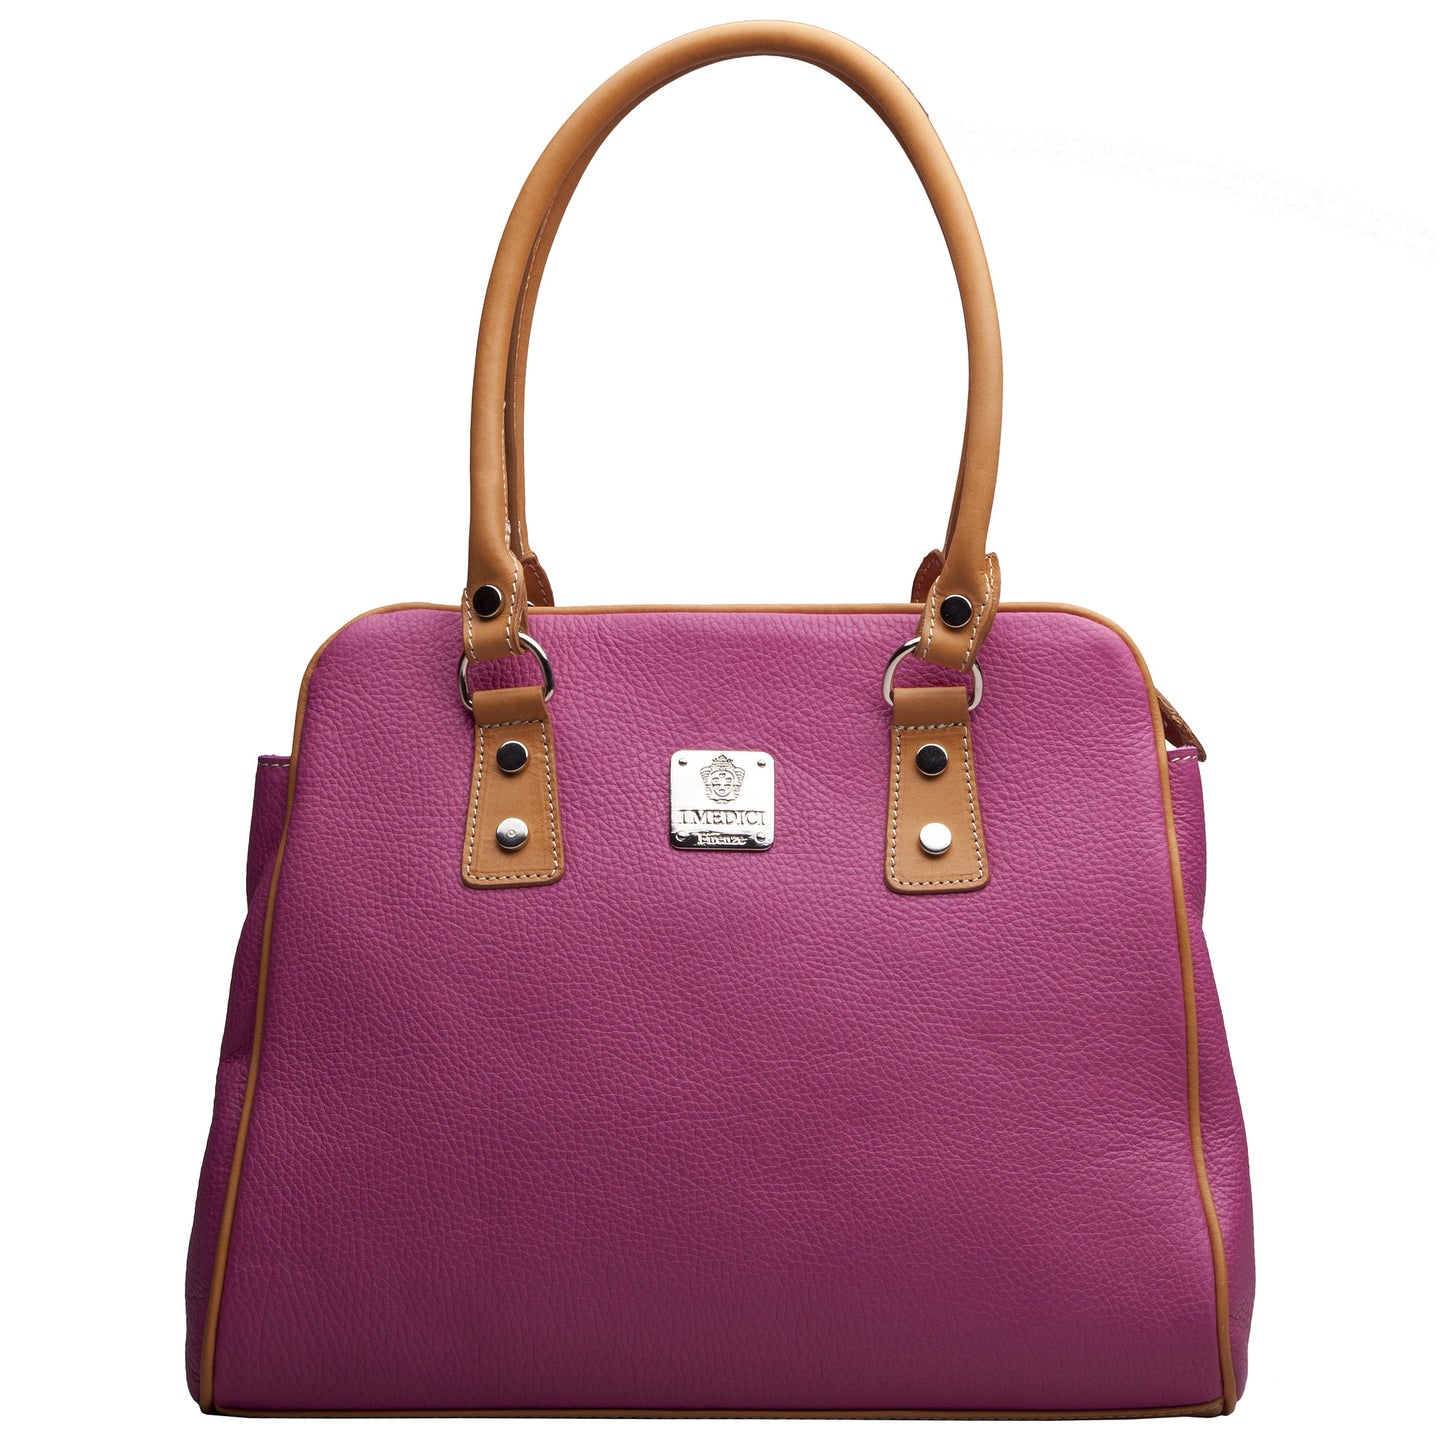 I Medici Pink Leather Handbags I Medici 989